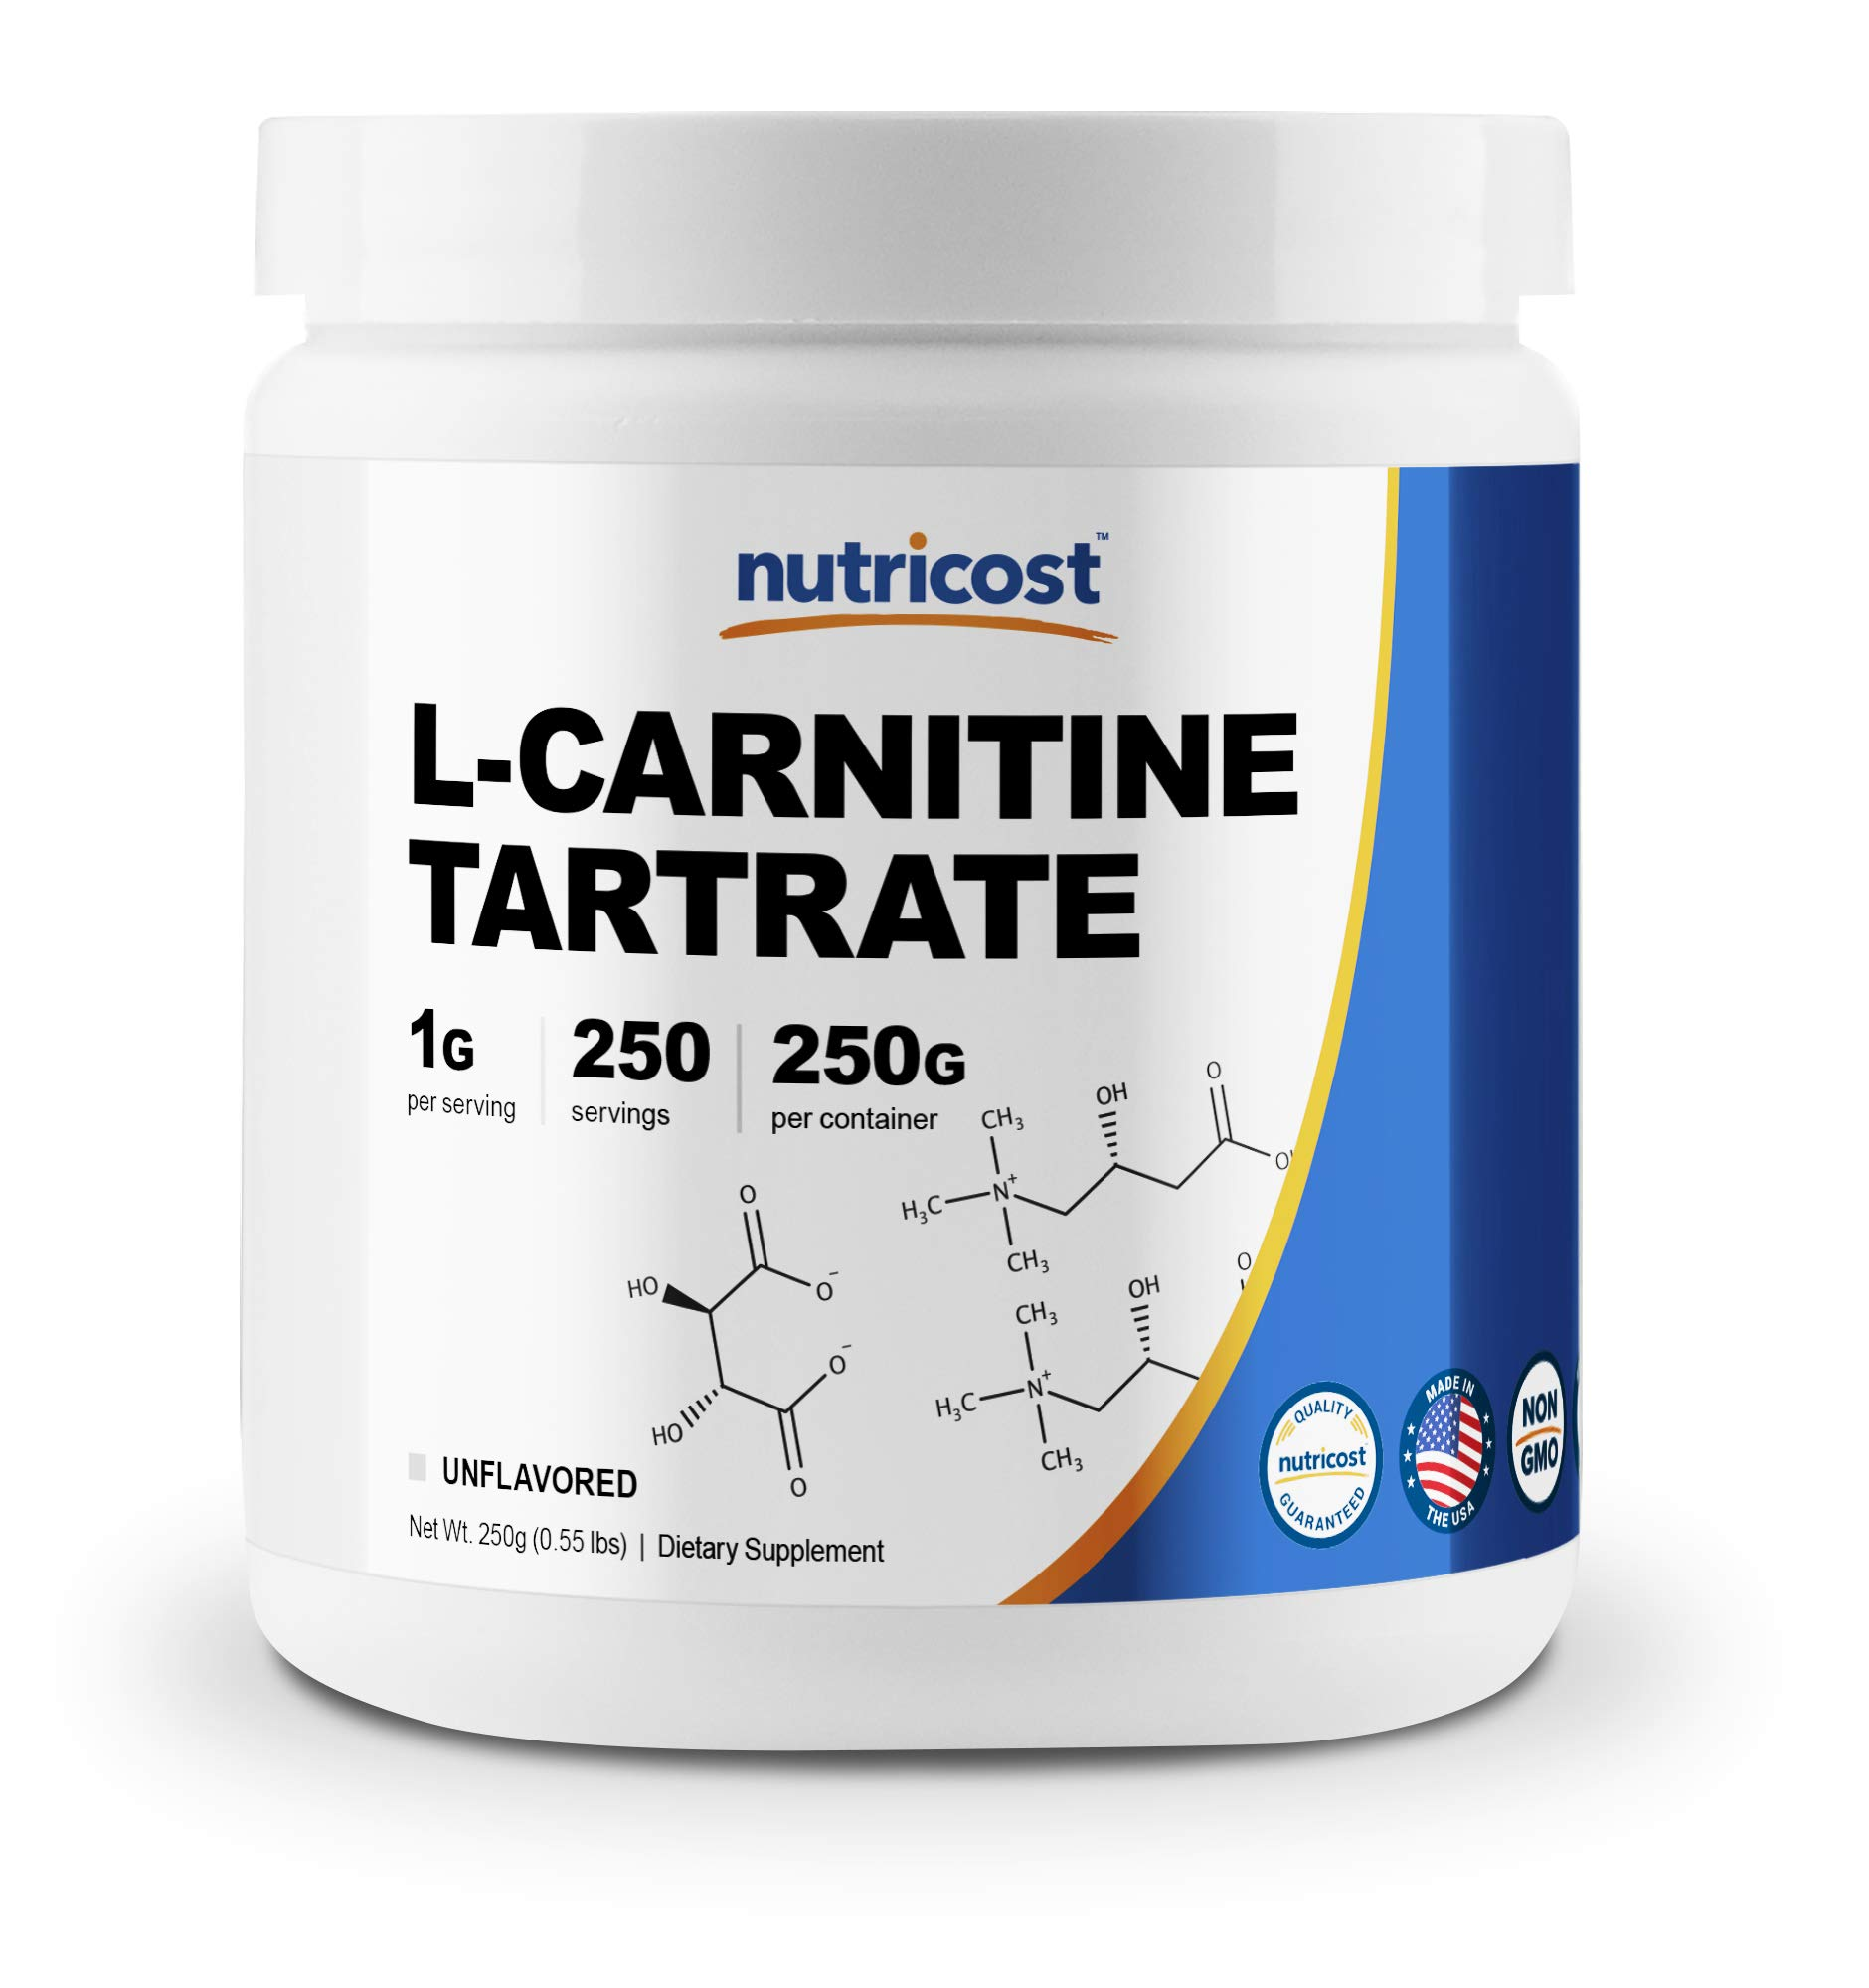 Nutricost L-Carnitine Tartrate Powder (250 Grams) - 1 Gram per Serving, 250 Servings by Nutricost